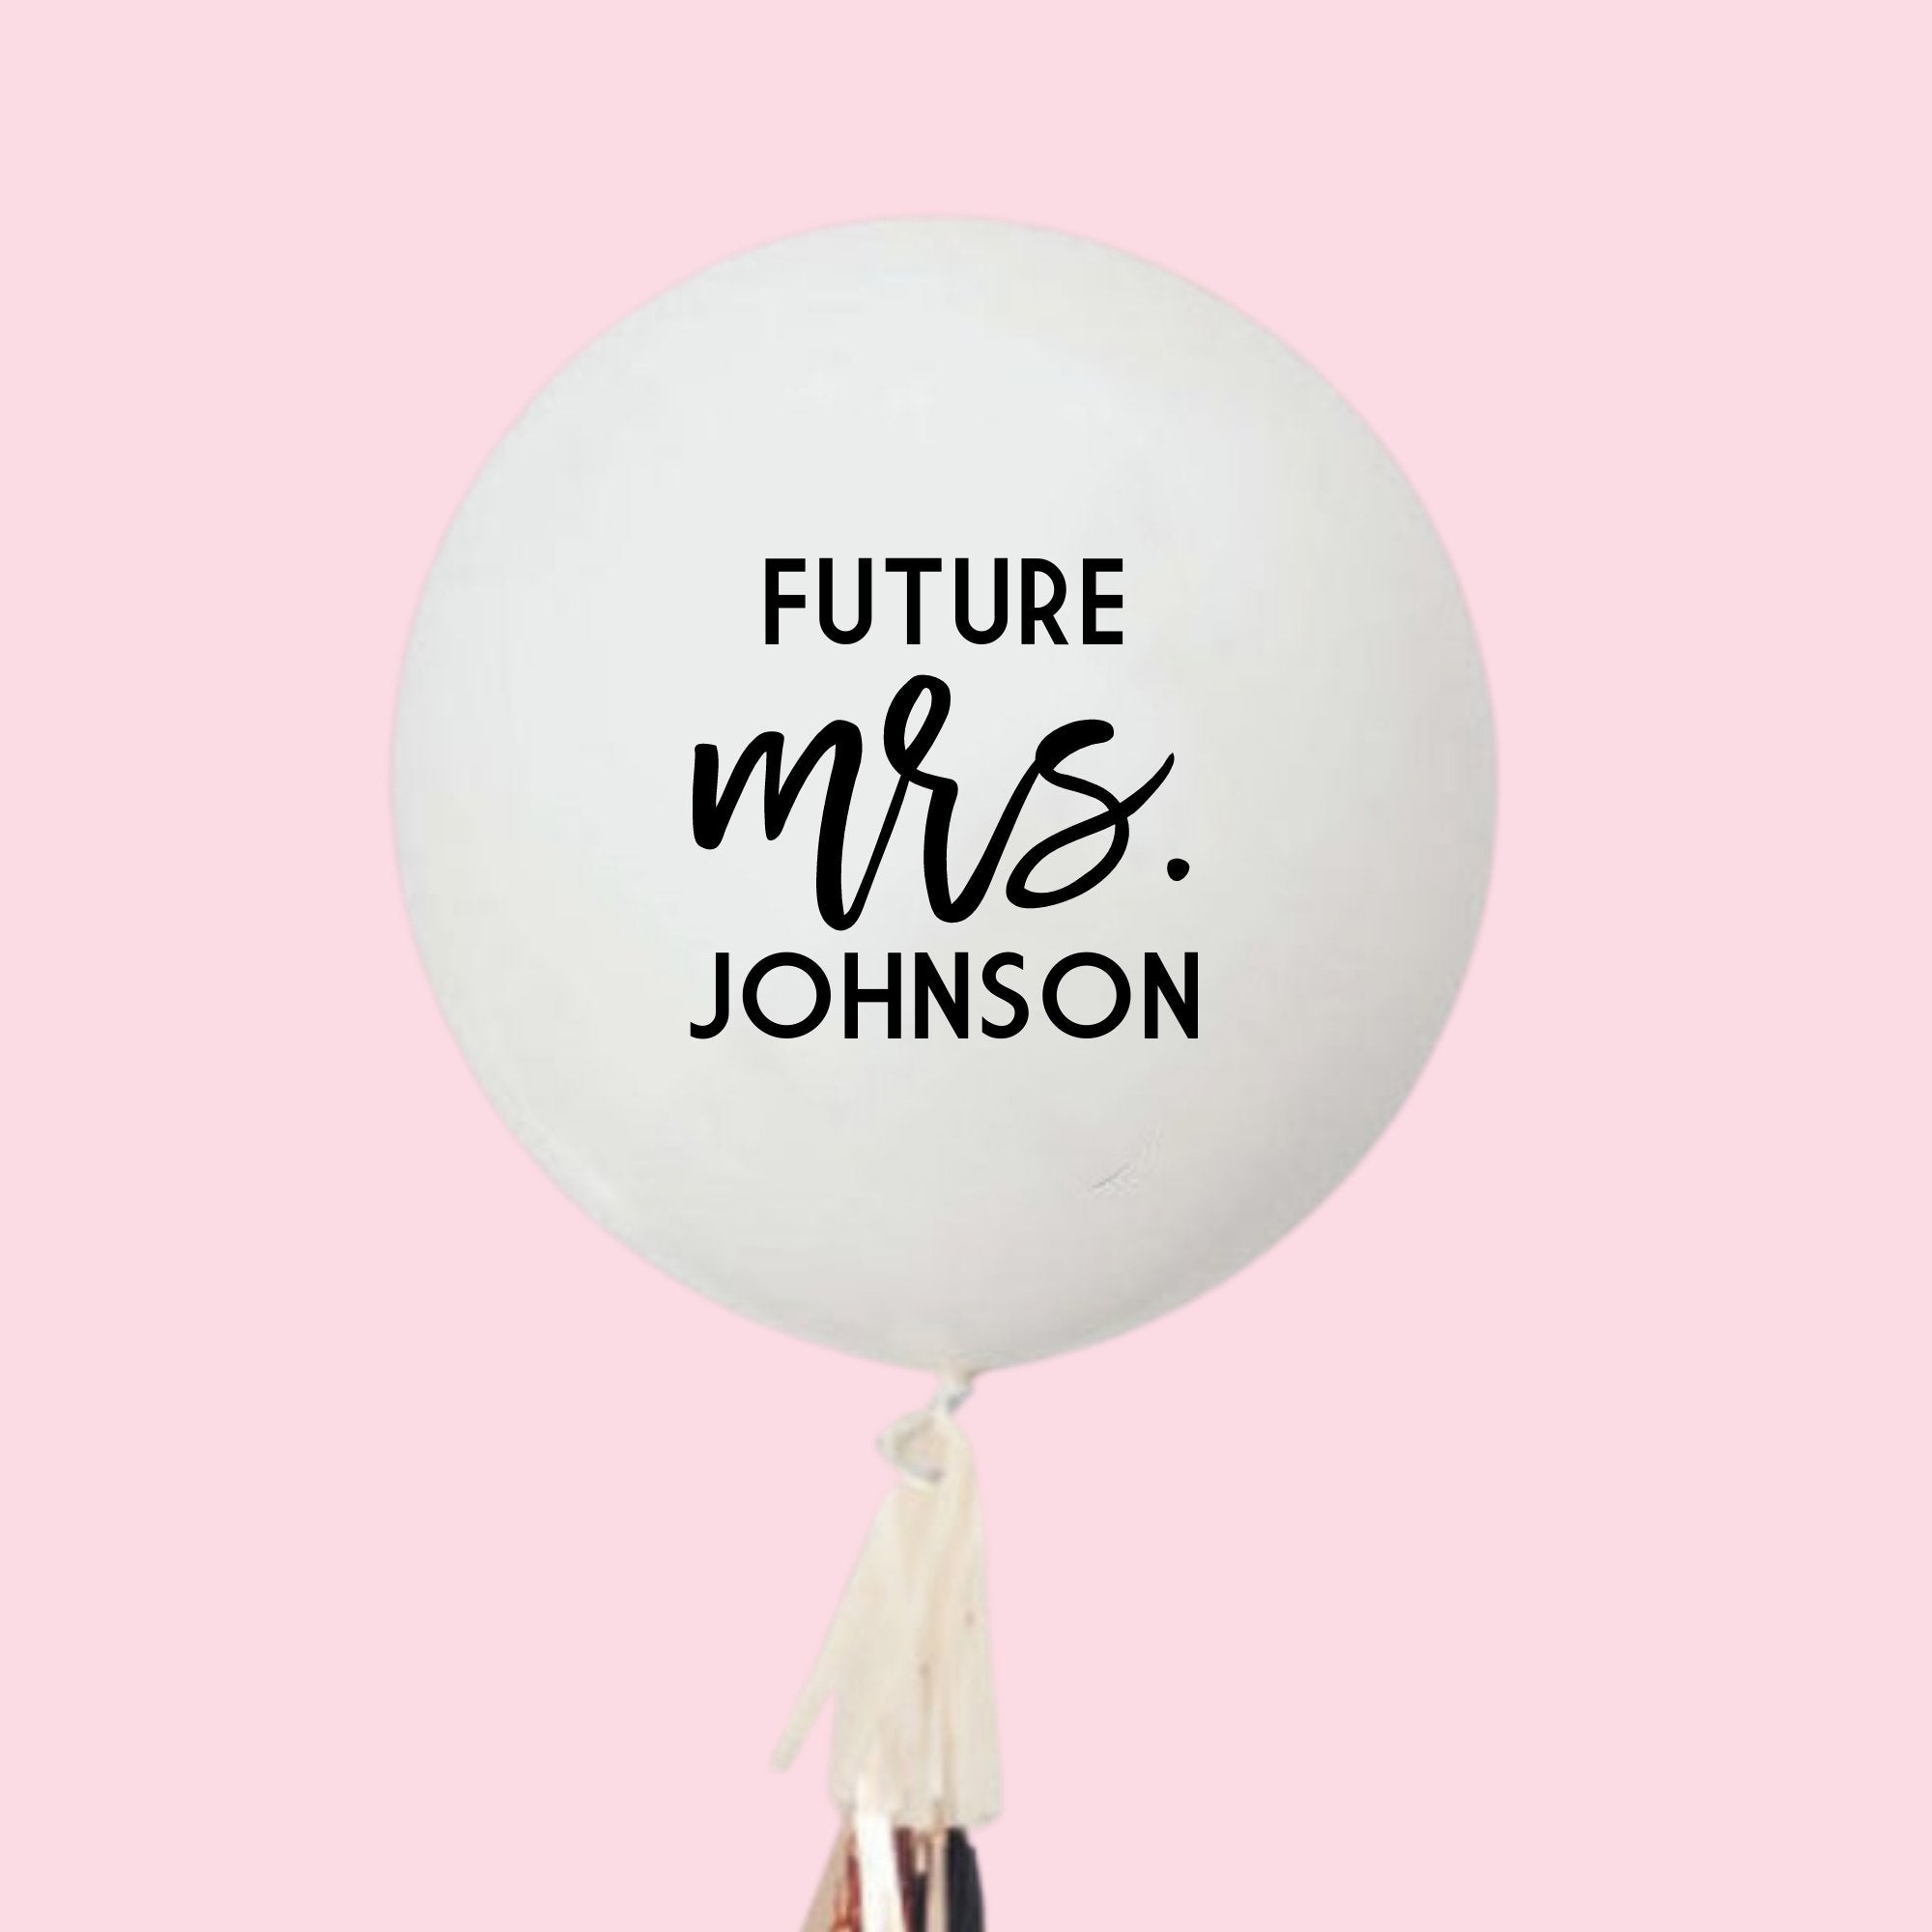 Custom Jumbo Balloon - Future Mrs - Sprinkled With Pink #bachelorette #custom #gifts